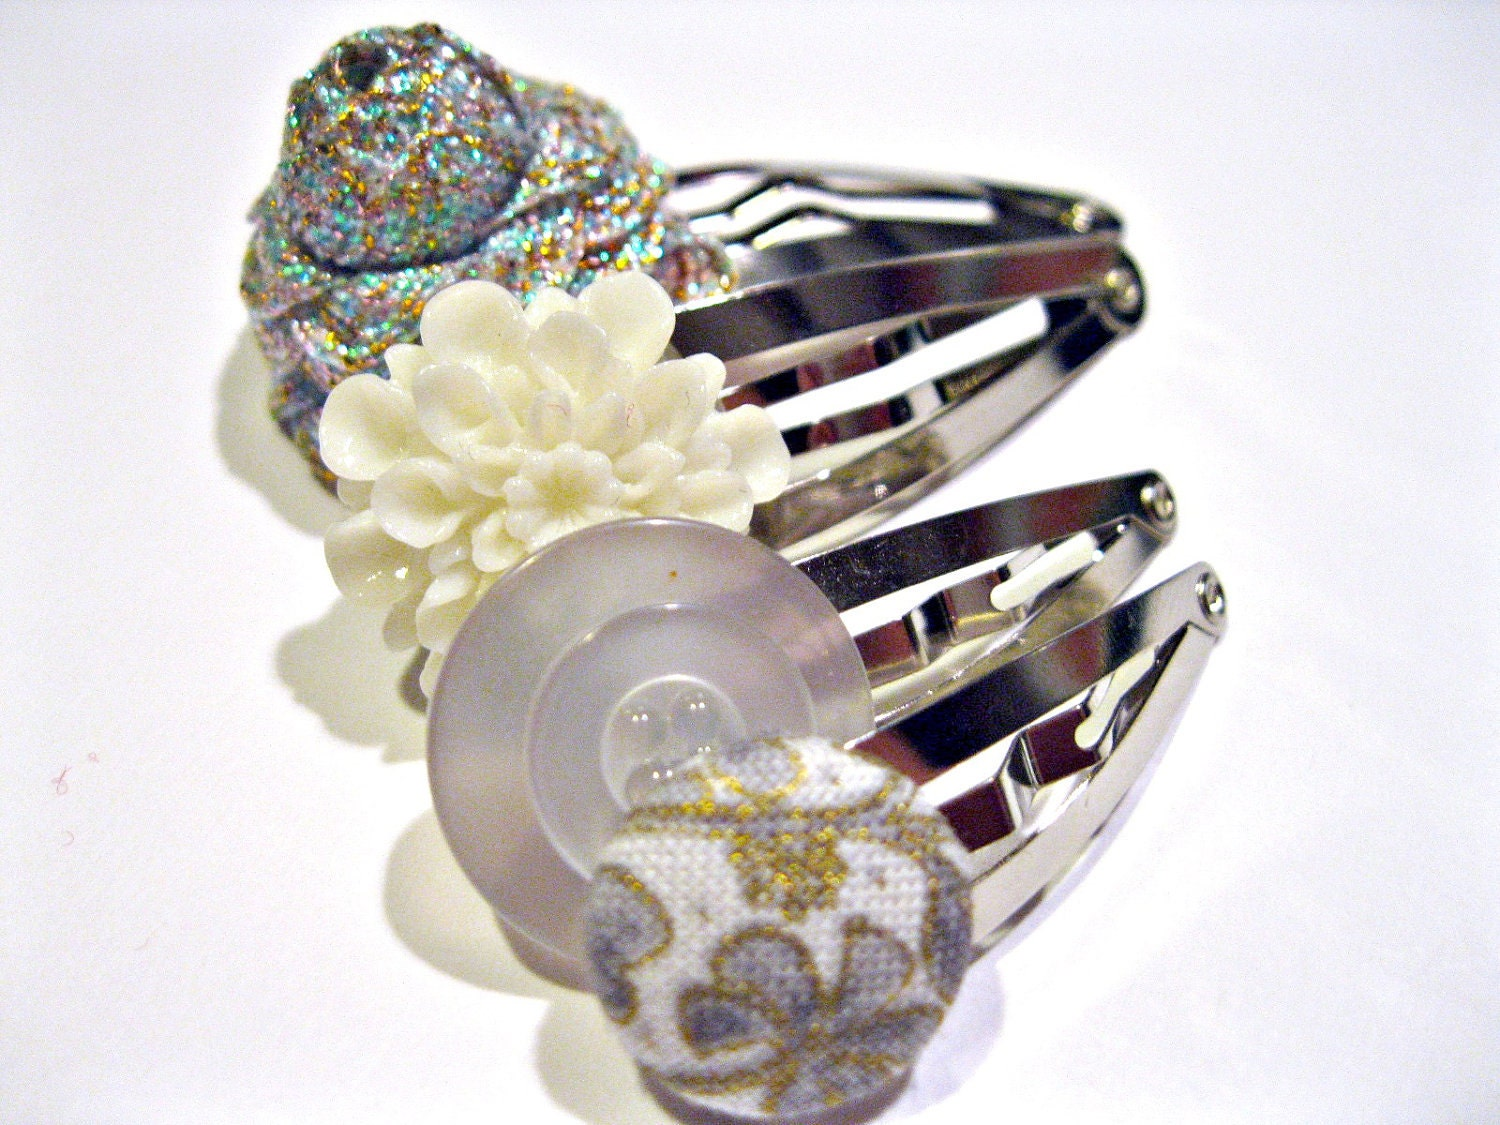 Funky Hair Clips Set of Four - White and Silver Mix of Snap Clips - Flowers and Buttons - Rotifera